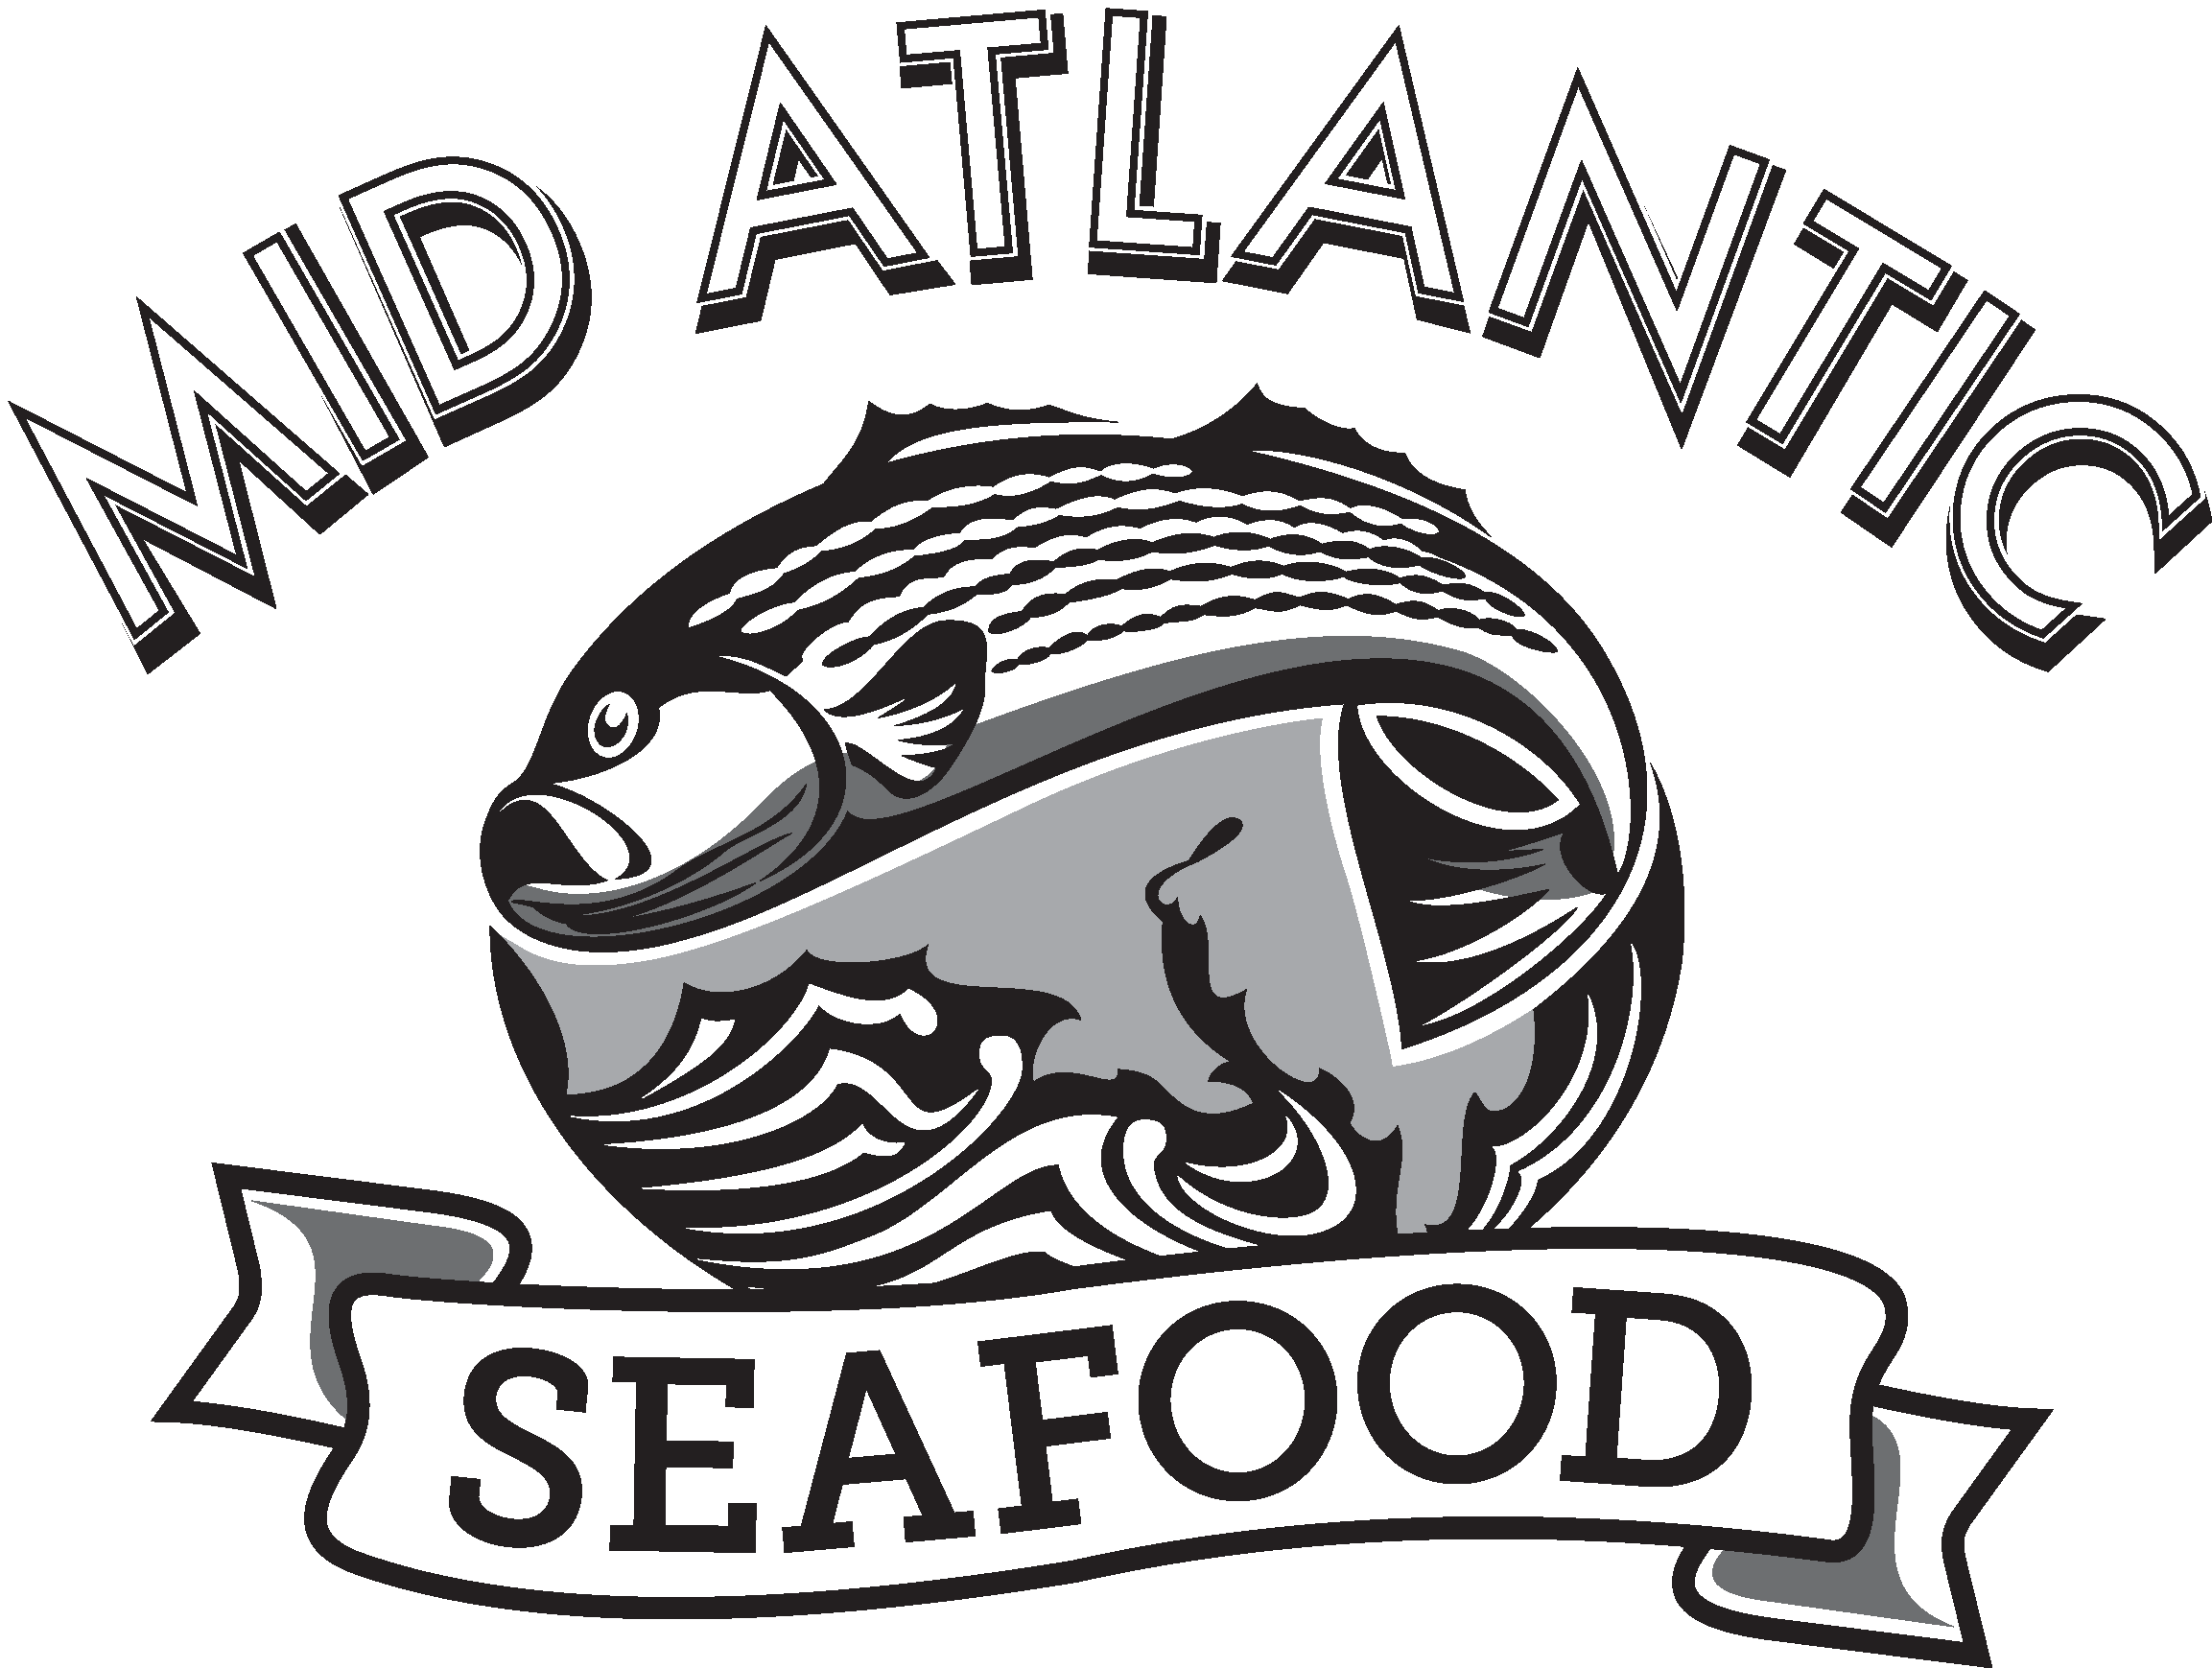 Mid Atlantic Sea food